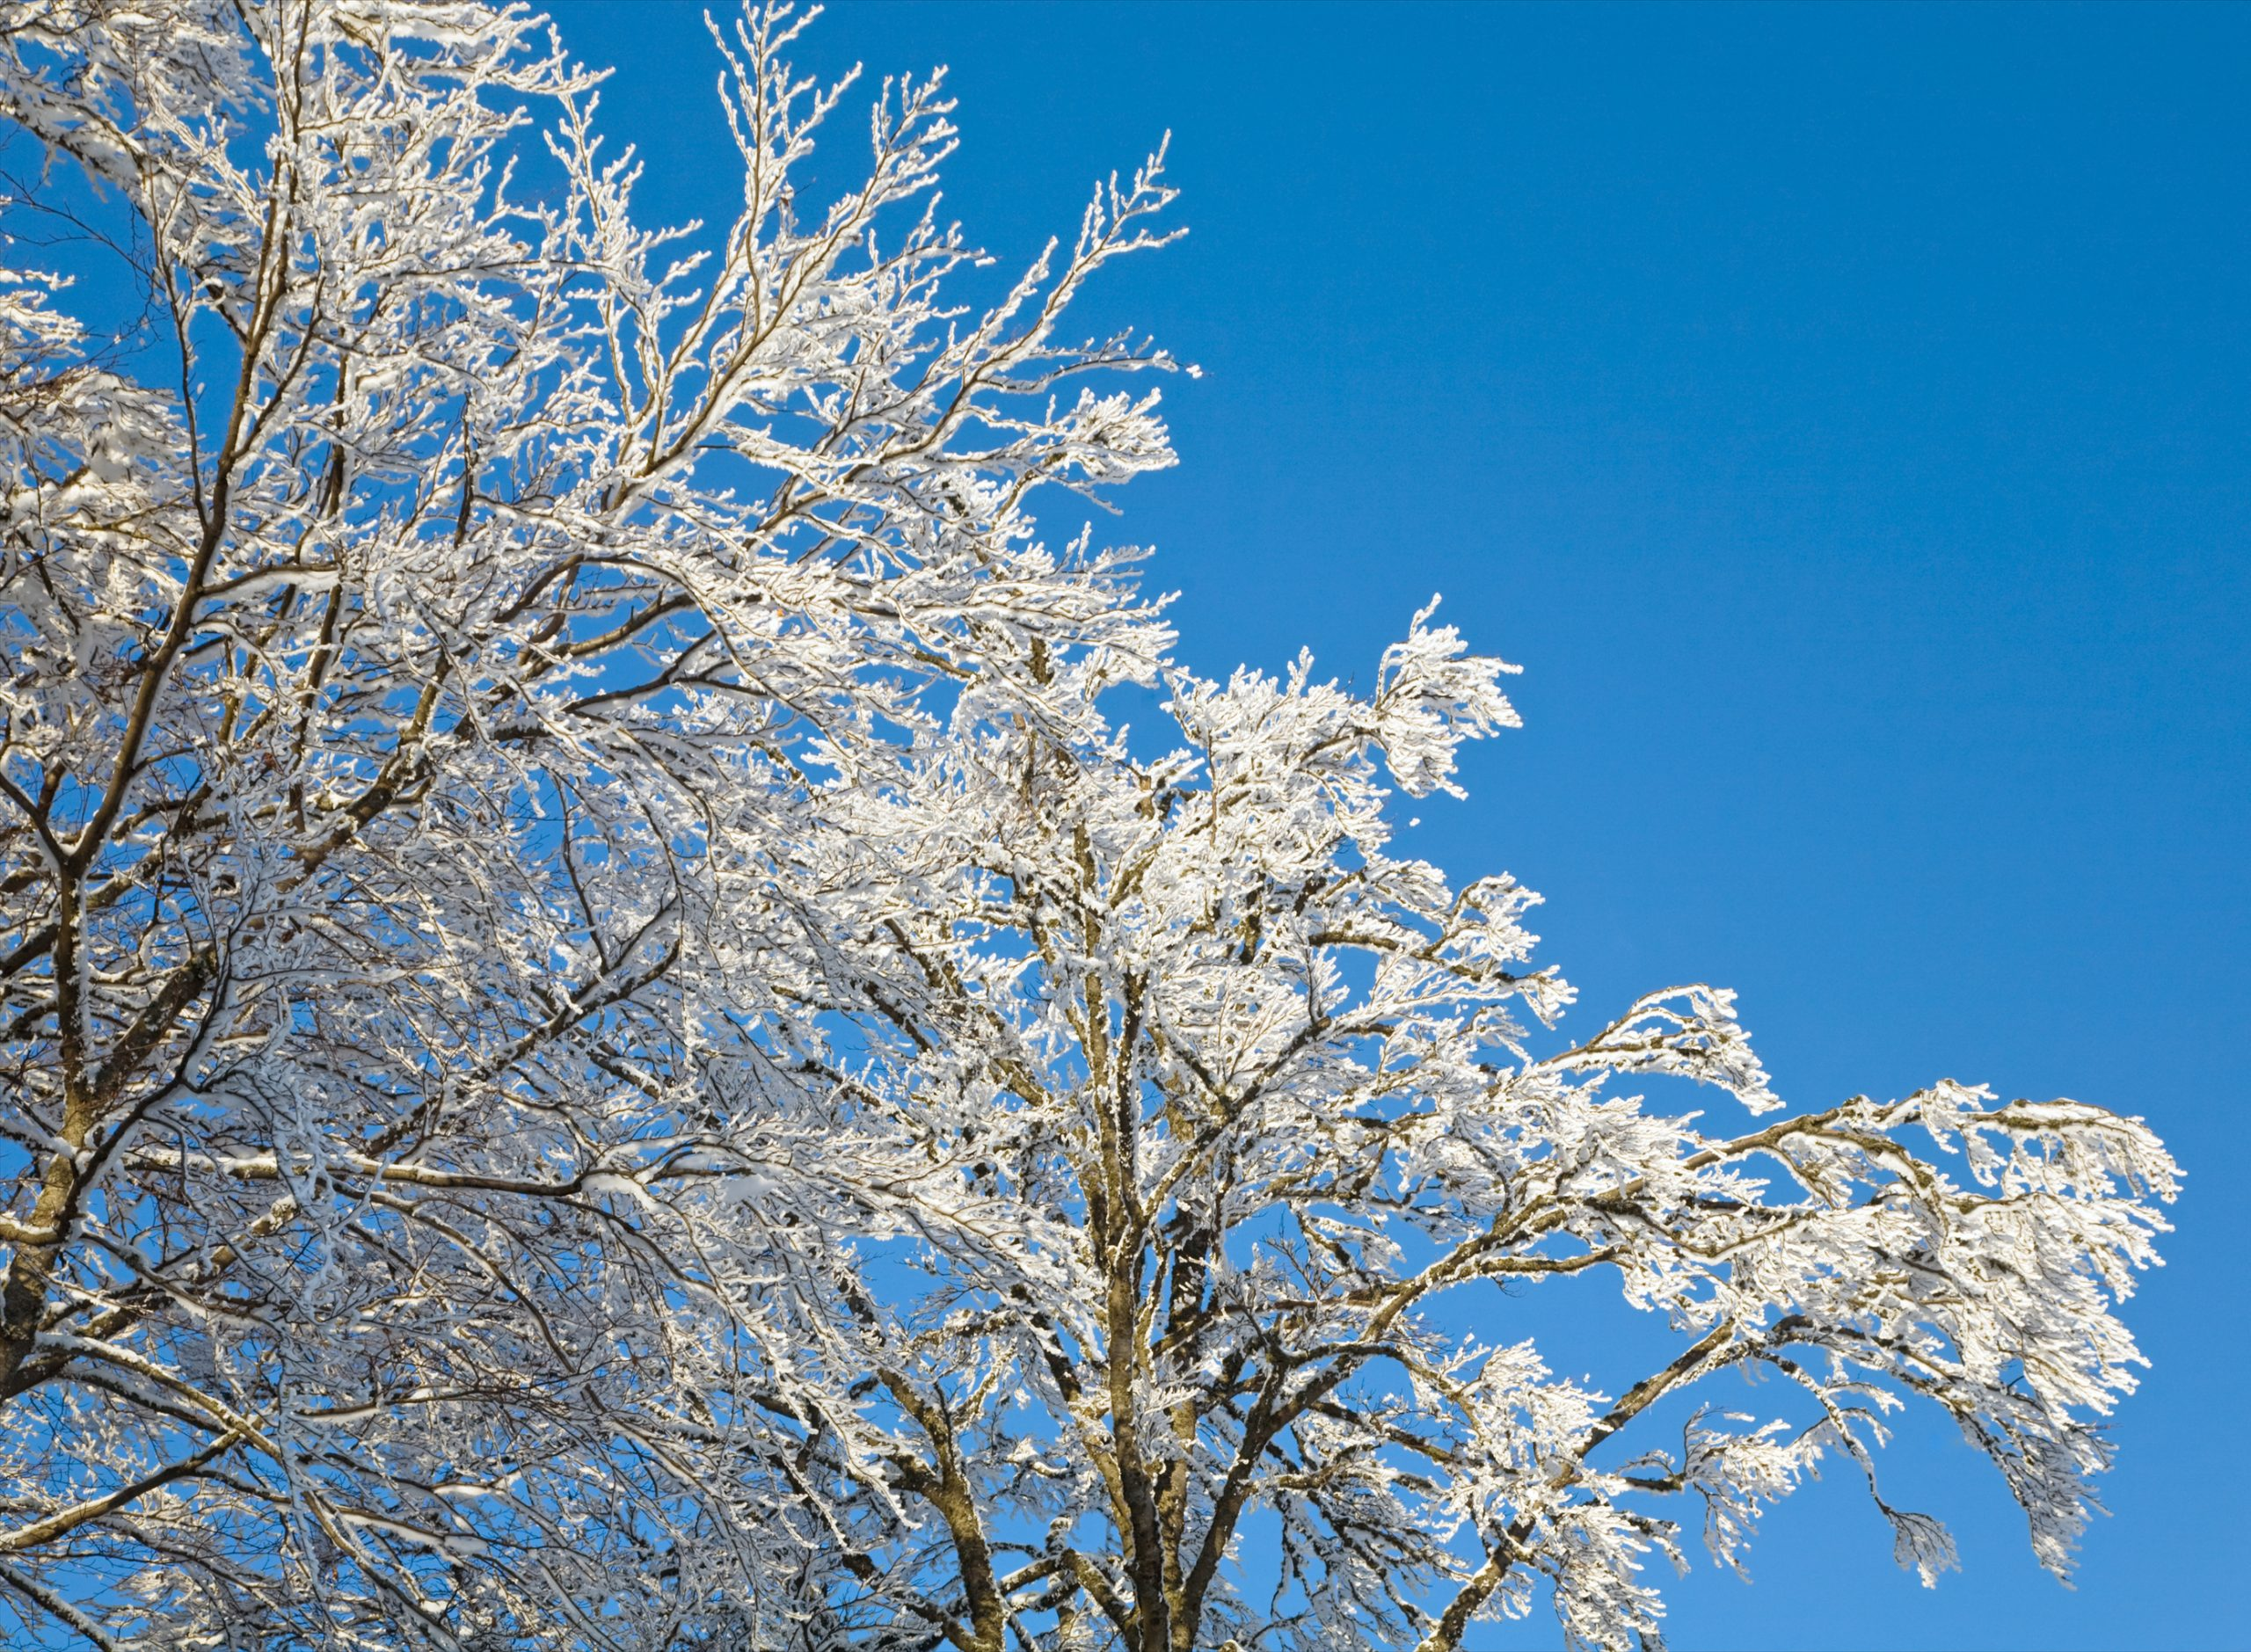 Hoarfrost on tree to illustrate Winter Tree Care Tips for the Season